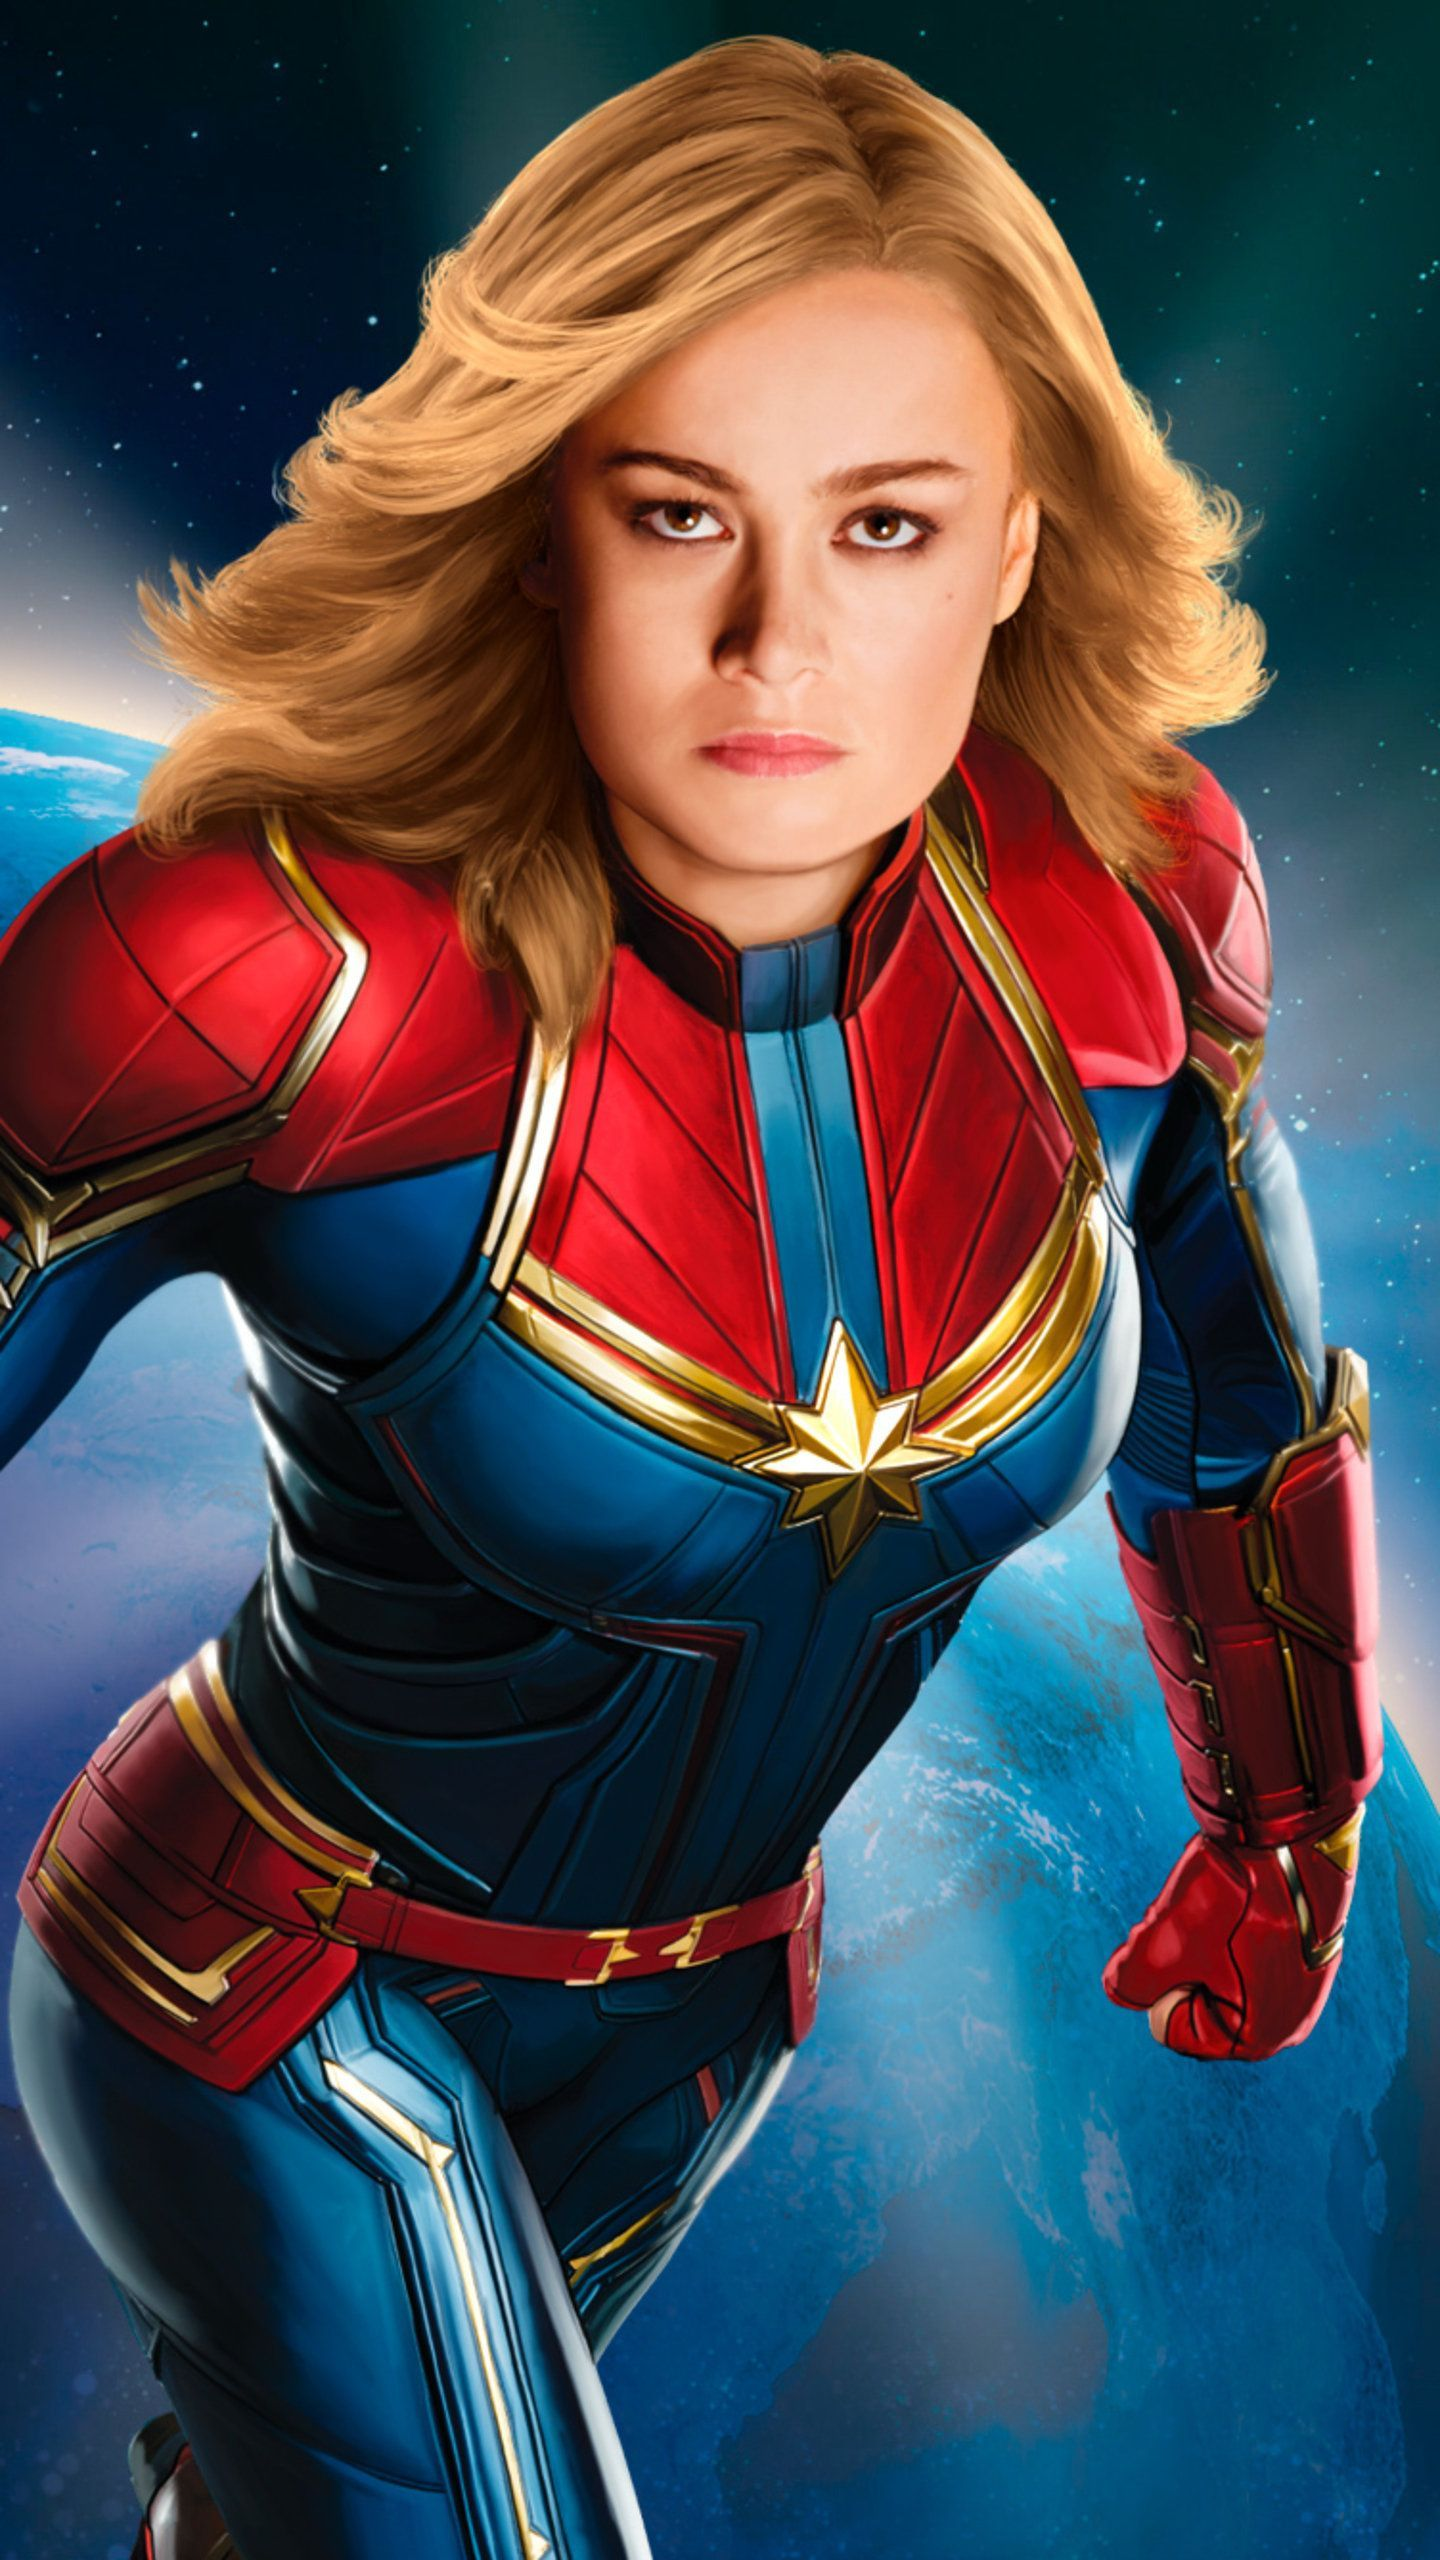 Captain Marvel New 2019 Poster HD Movies Wallpapers Photos ...